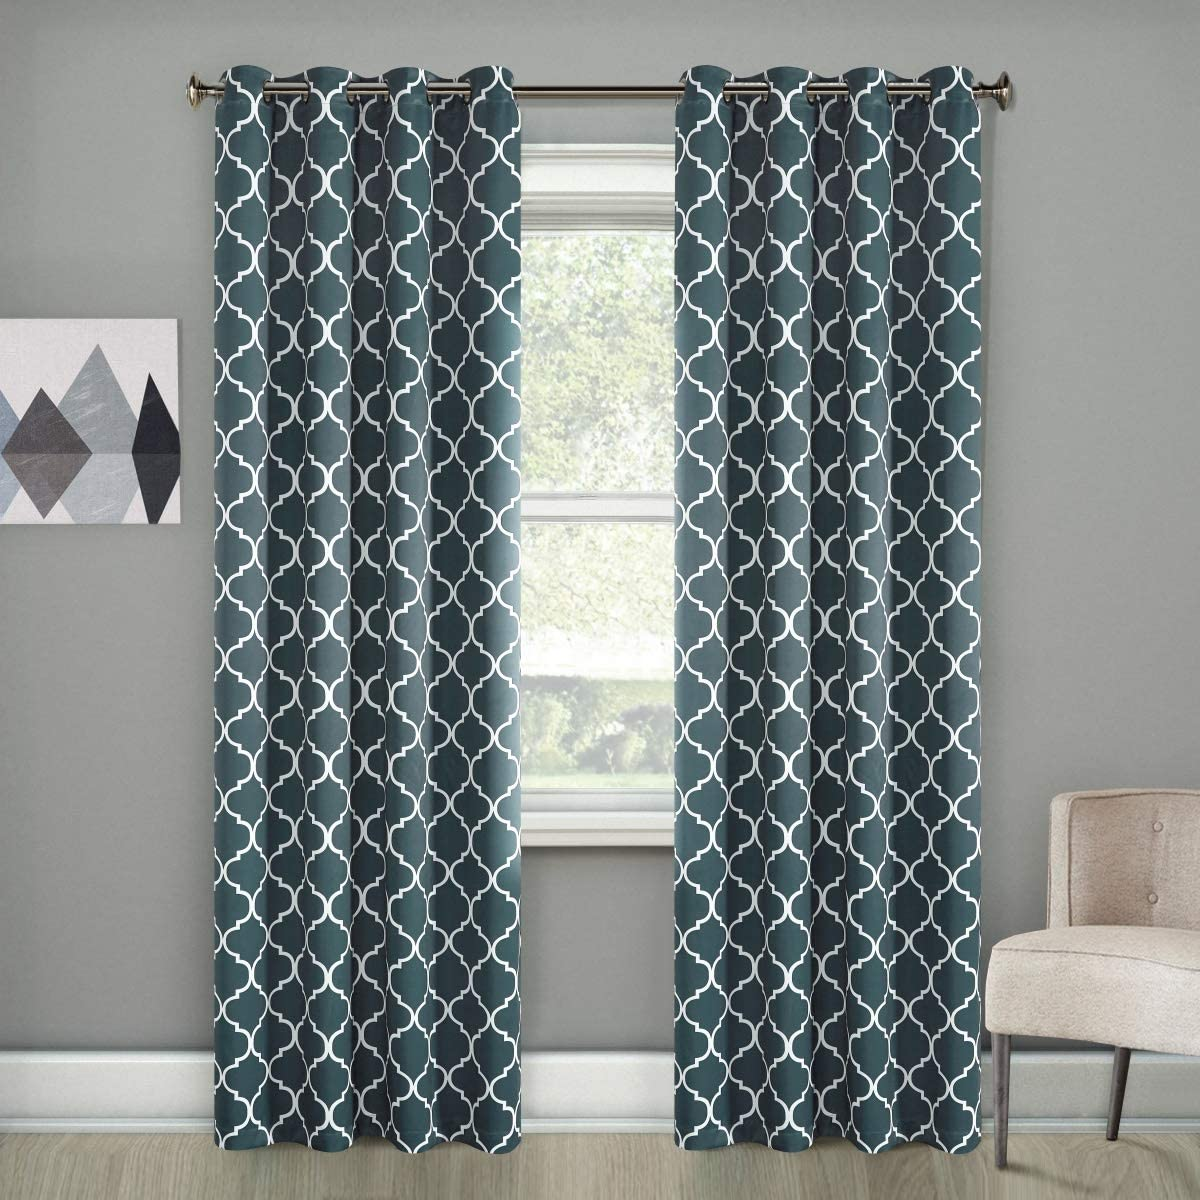 Dreaming Casa Gray Blackout Curtains White Moroccan Draperies Thermal Insulated Grommet Top Two Panels 100 W x 108 L